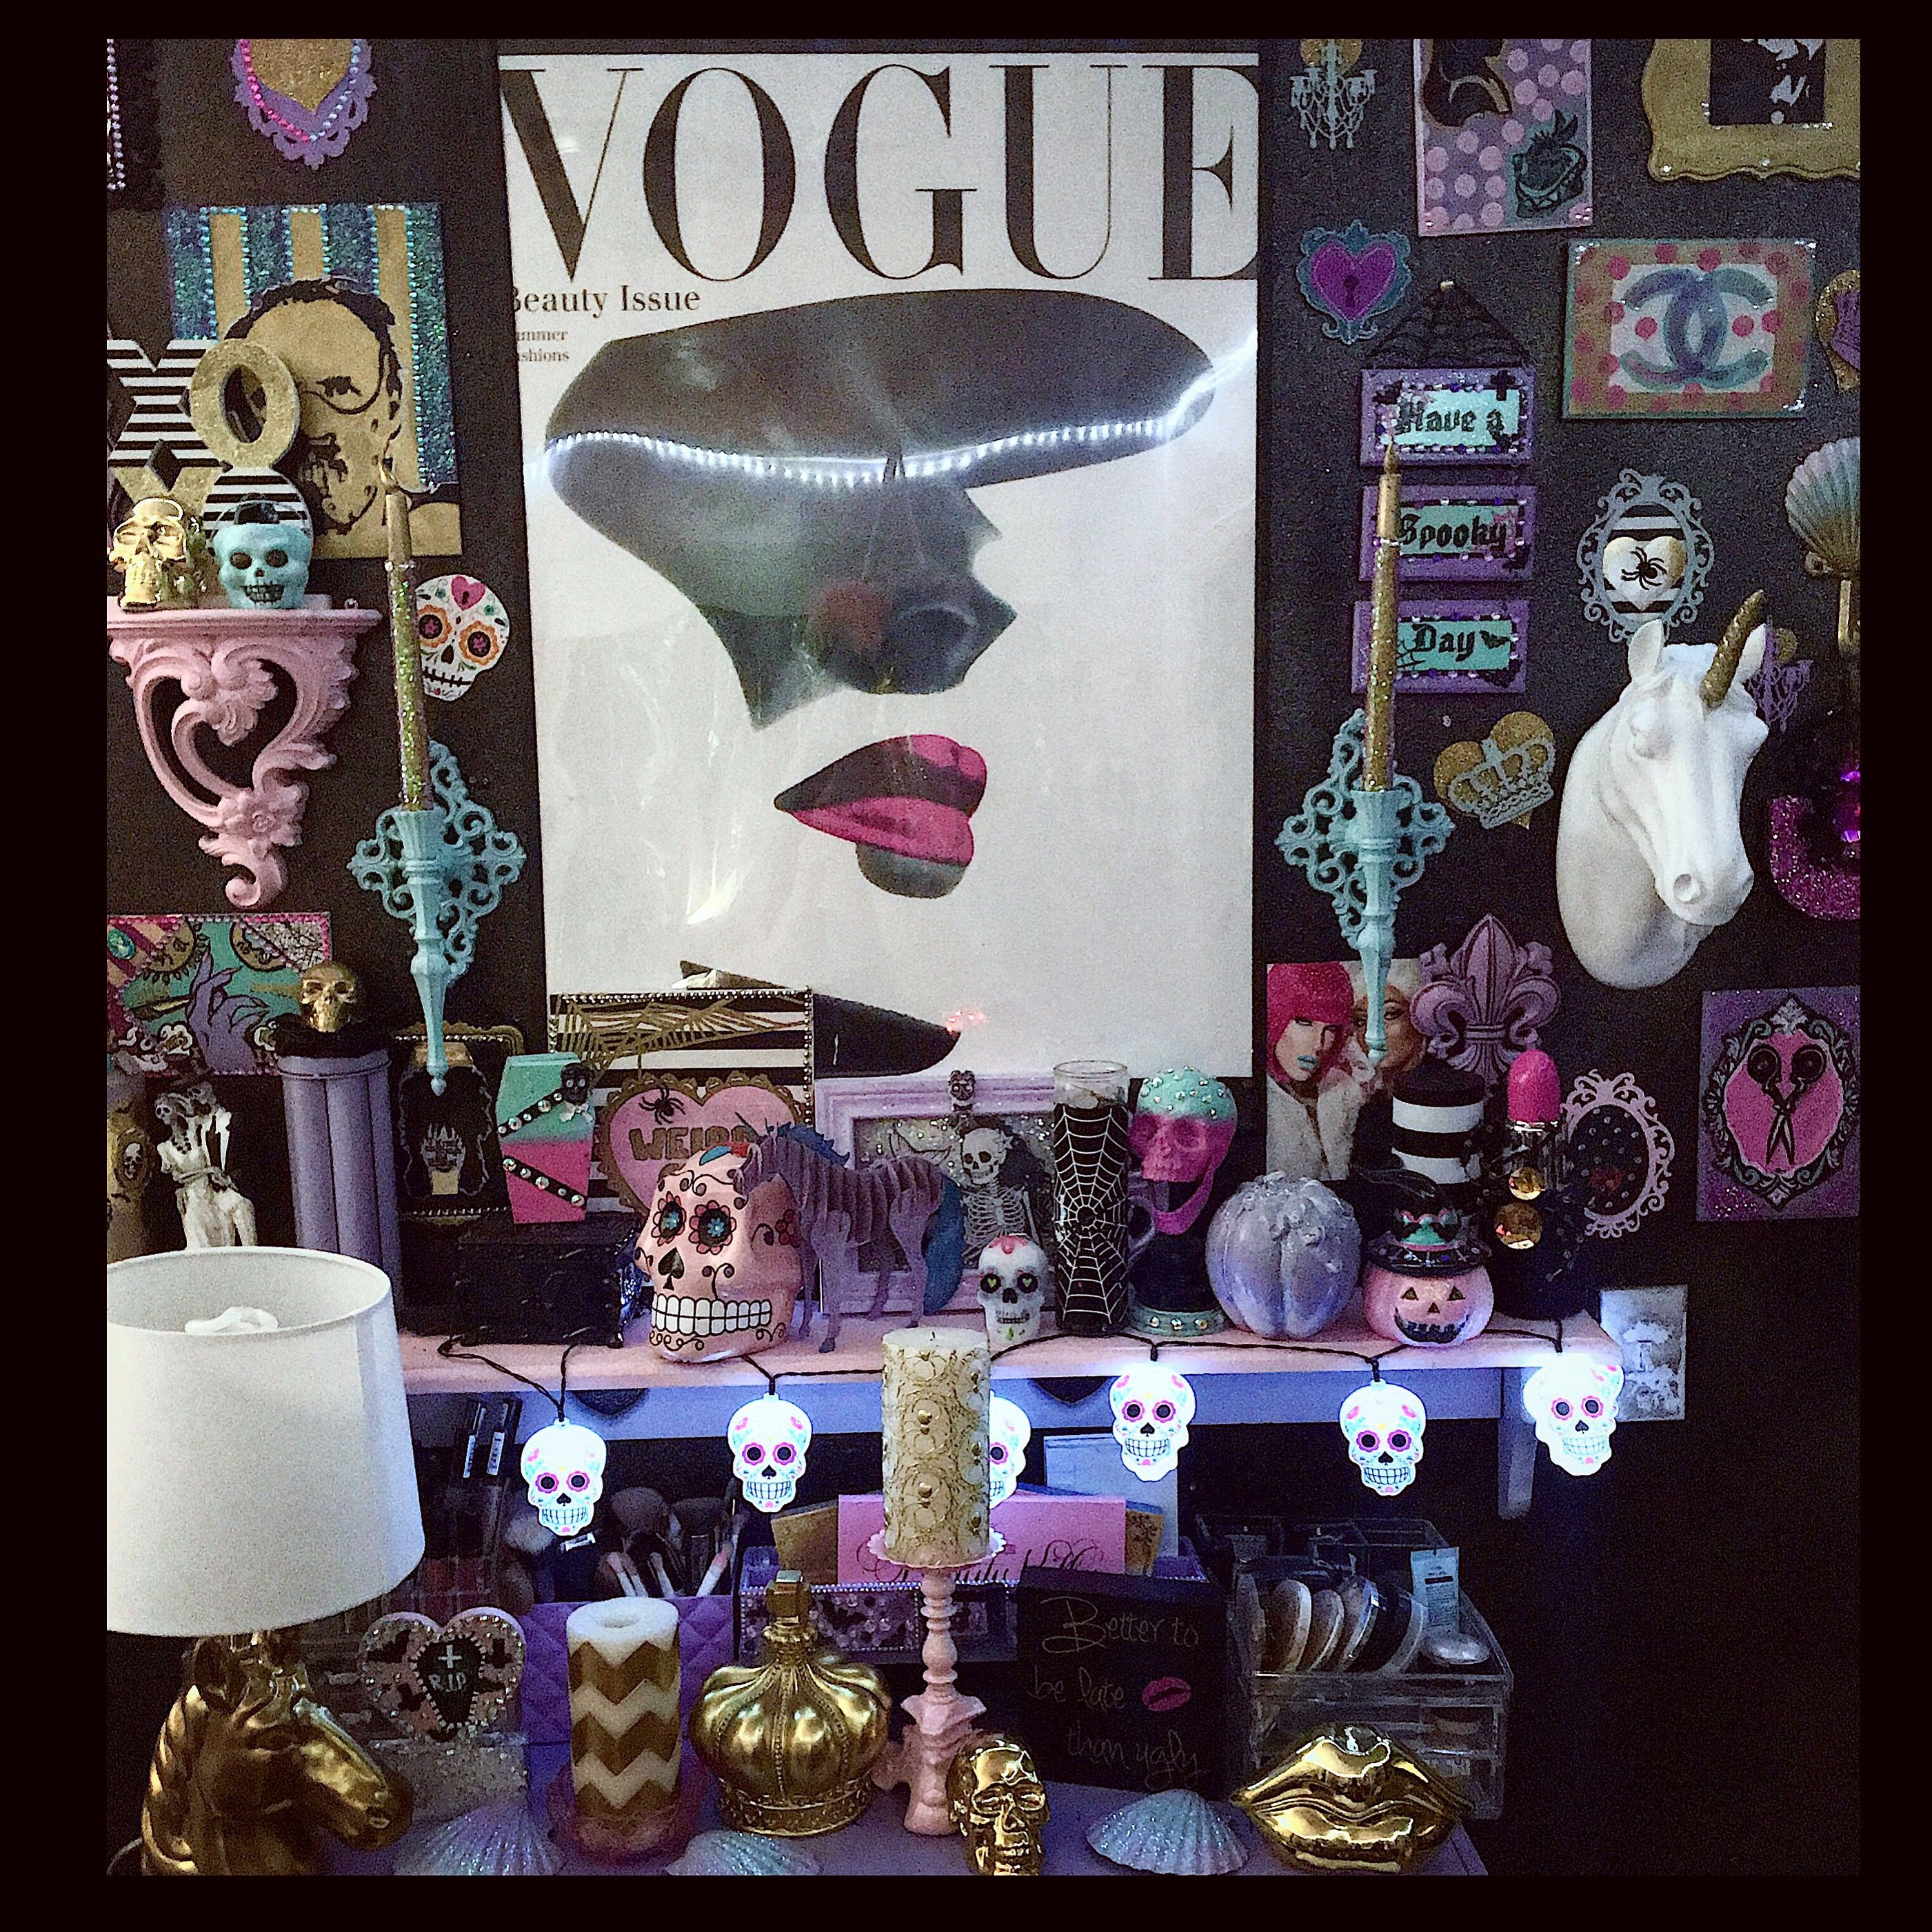 Pastel Goth Room Decor Wiring Diagrams All Points 421265 On Off Circuit Breaker Switch 30a 250v My Makeup Jaidyn Perkins Diy Rh Pinterest Com Teen